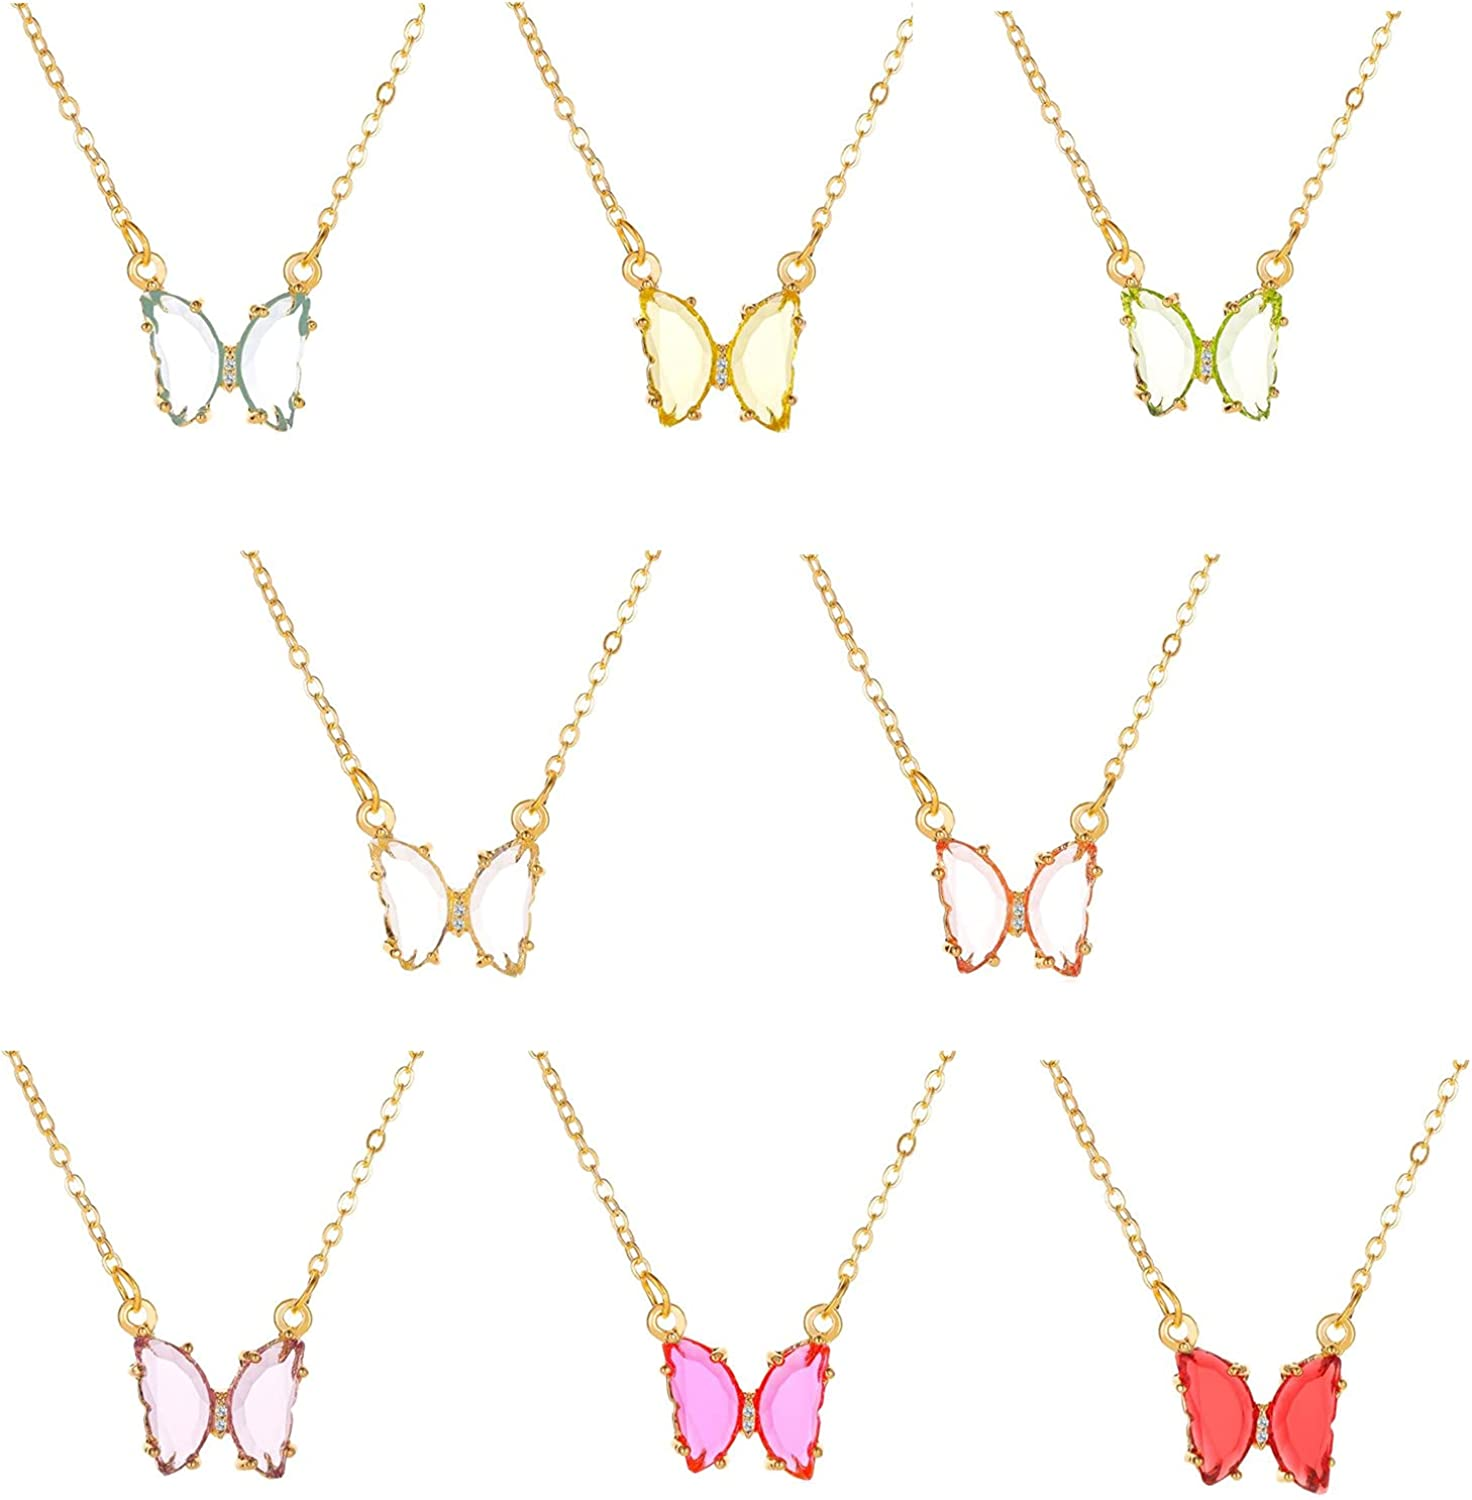 8Pcs Crystal Butterfly Necklace Colorful Transparent Rhinestone Butterfly Animal Pendant Necklace Shiny Jewelry for Women Girl